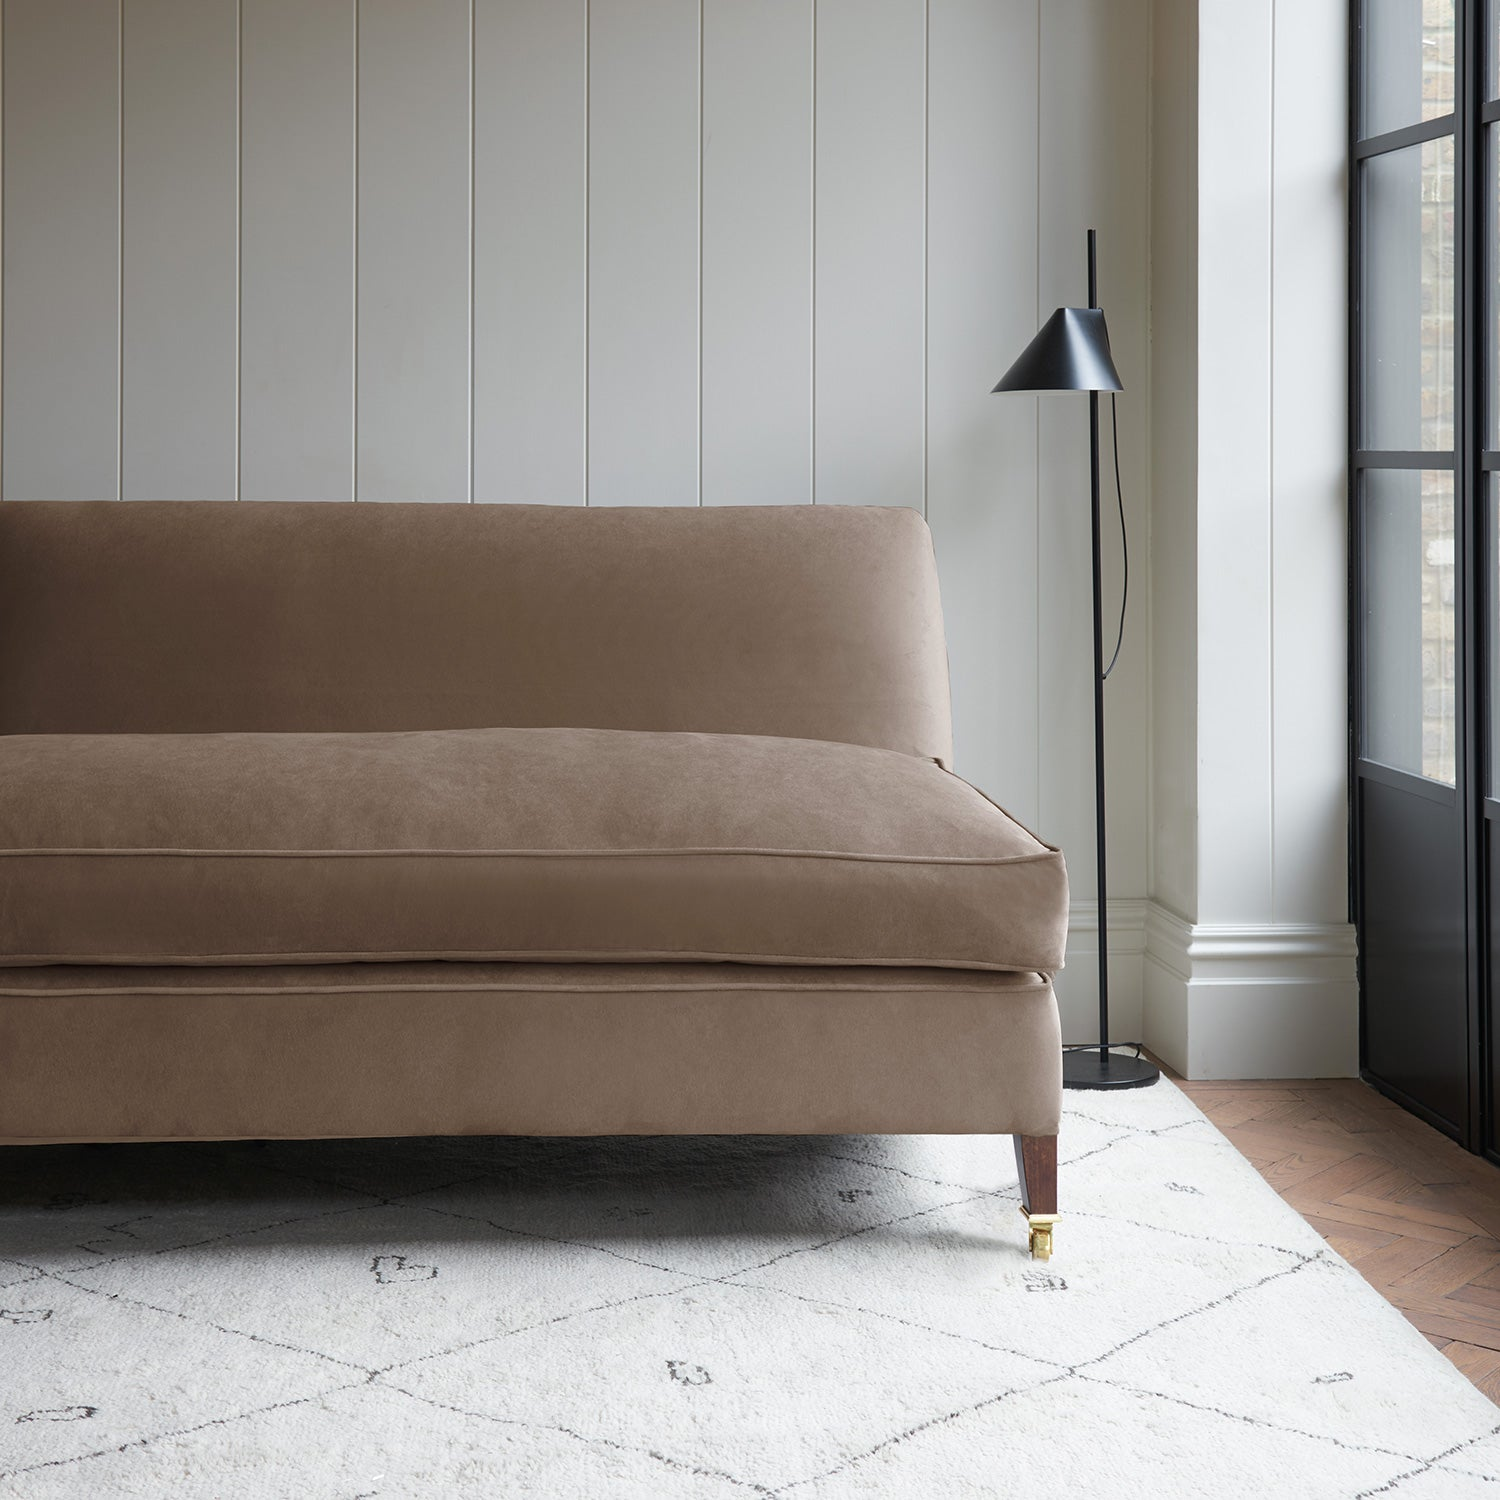 Velvet sofa in a brown velvet fabric with stain resistant finish